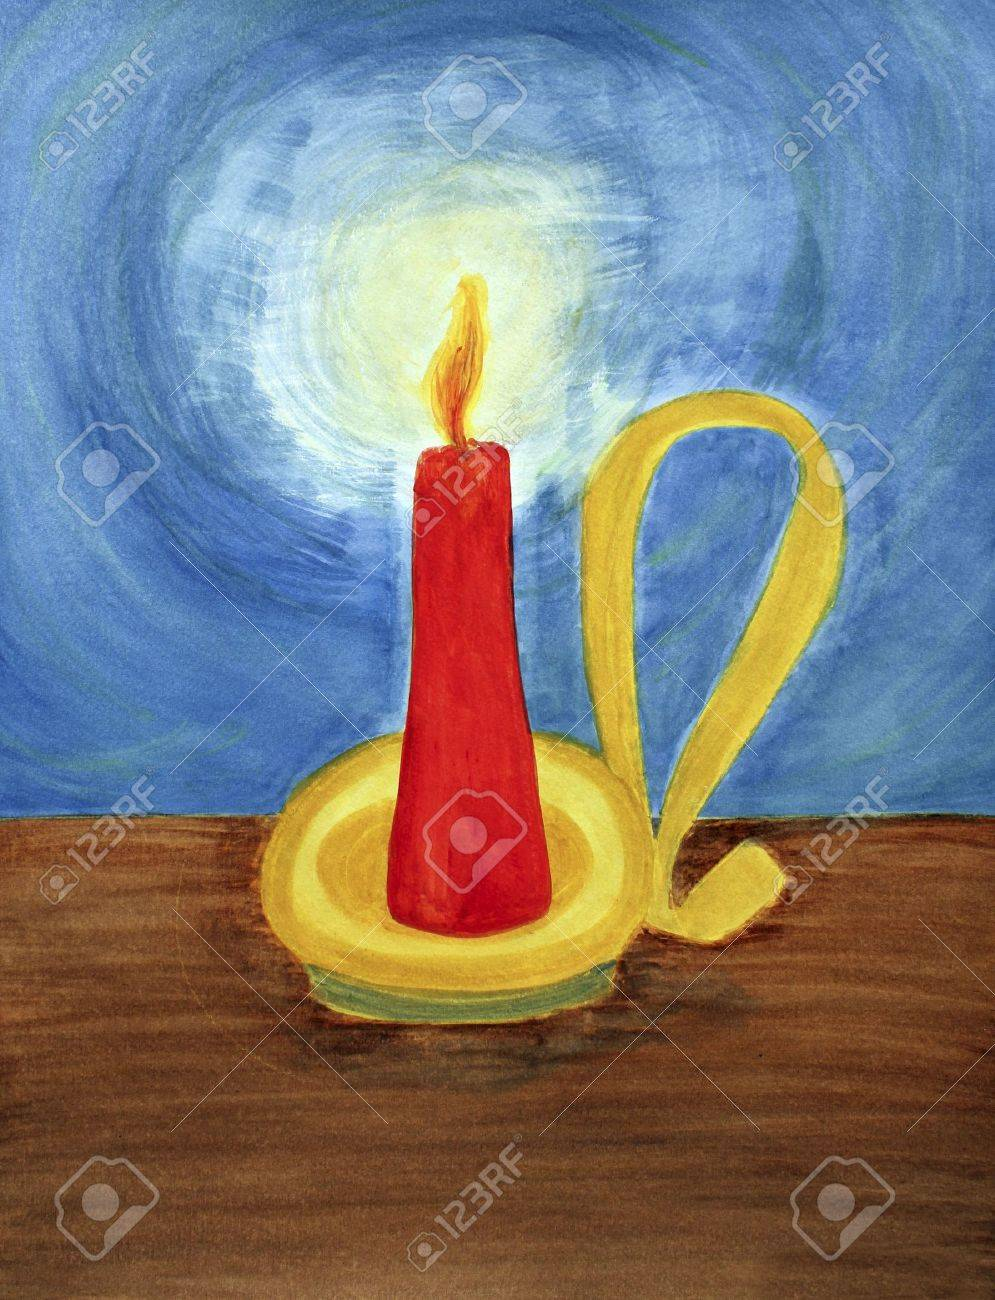 In a yellow,  gold and brass colored candle holder with an old fashioned looking handle, a red candle burns brightly. It lights up the dark blue night with its flickering, orange yellow flame letting off a yellow, white brightness. The candle sits on a br Stock Photo - 7290645